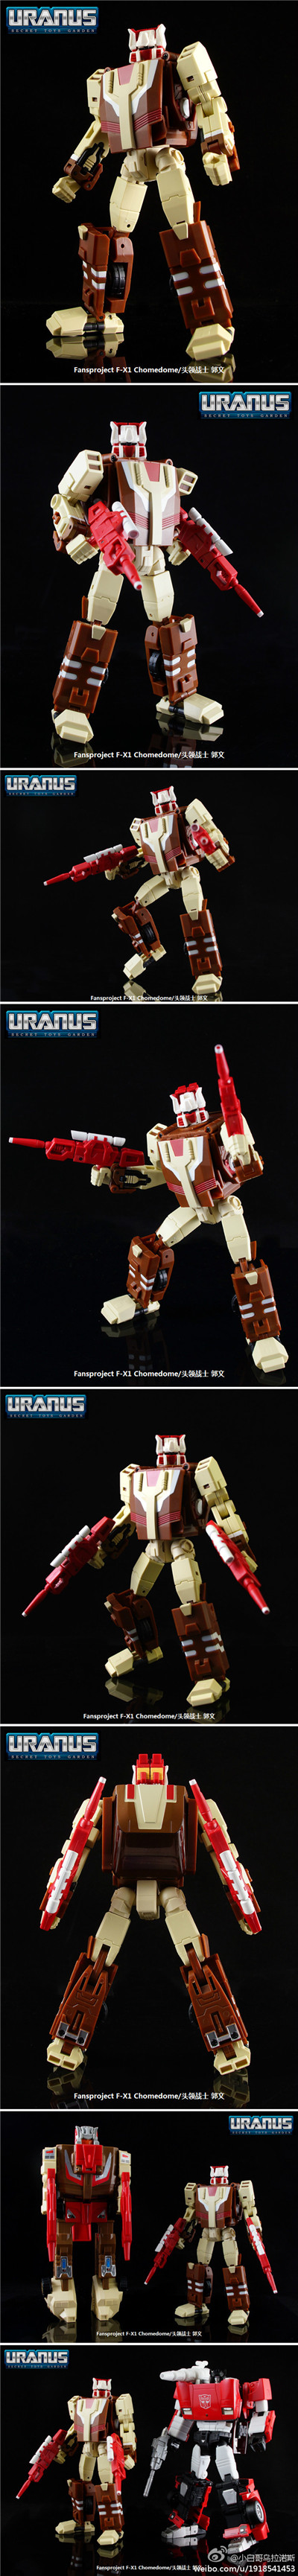 Transformers Fansproject FPJ Function-X1 X-1 Headmaster